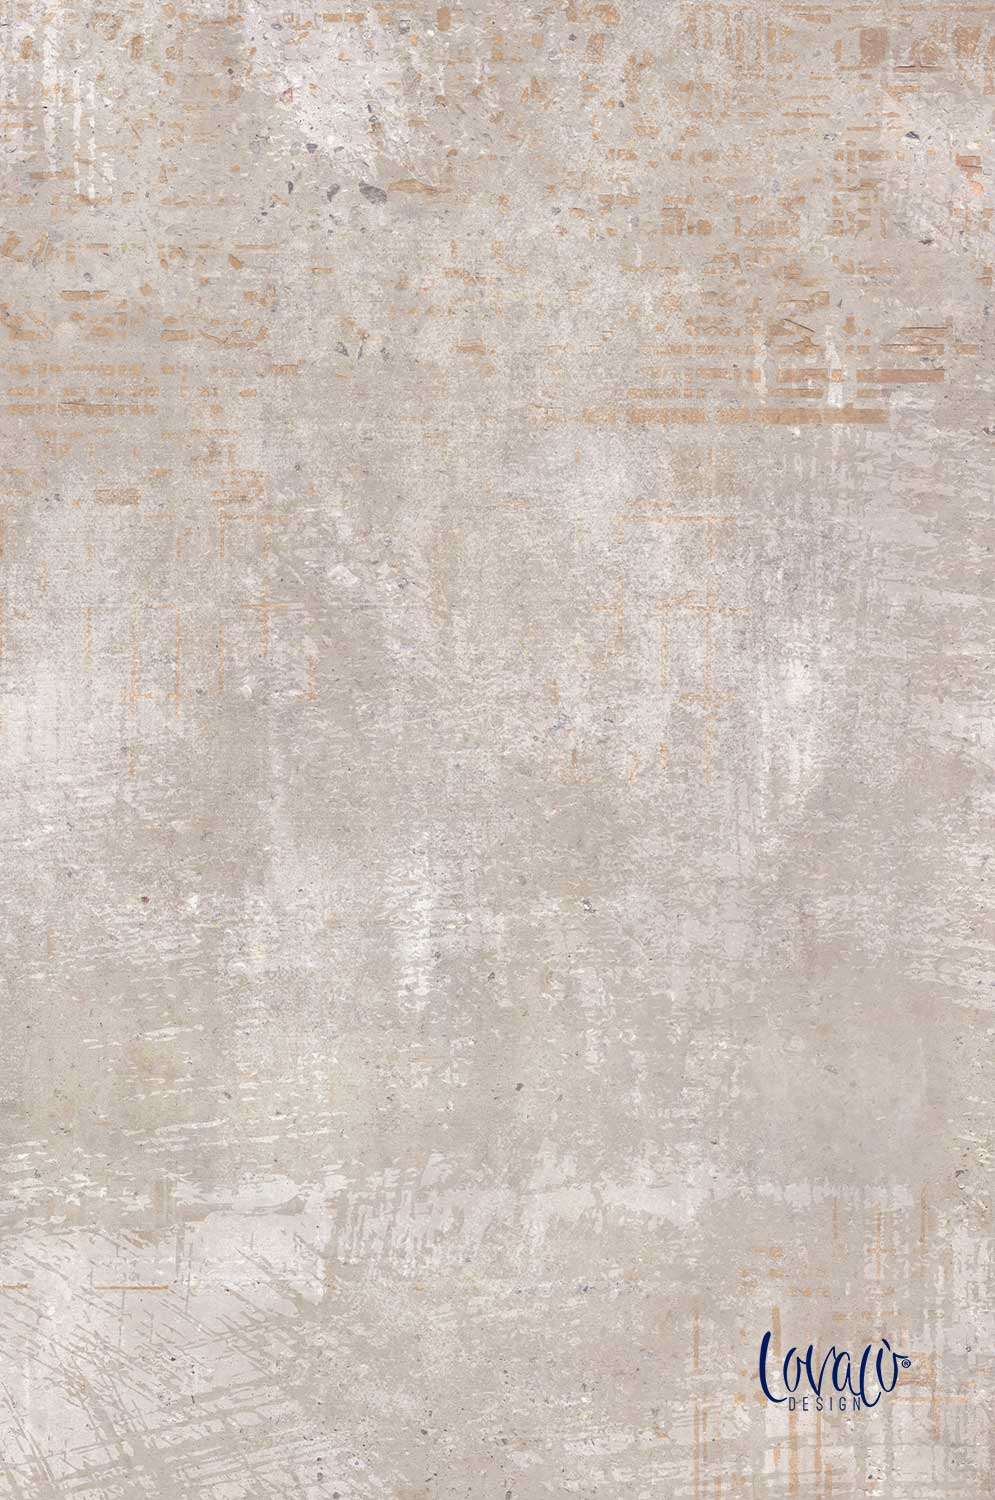 Vinyl photography backdrop avory concrete - Lov 833